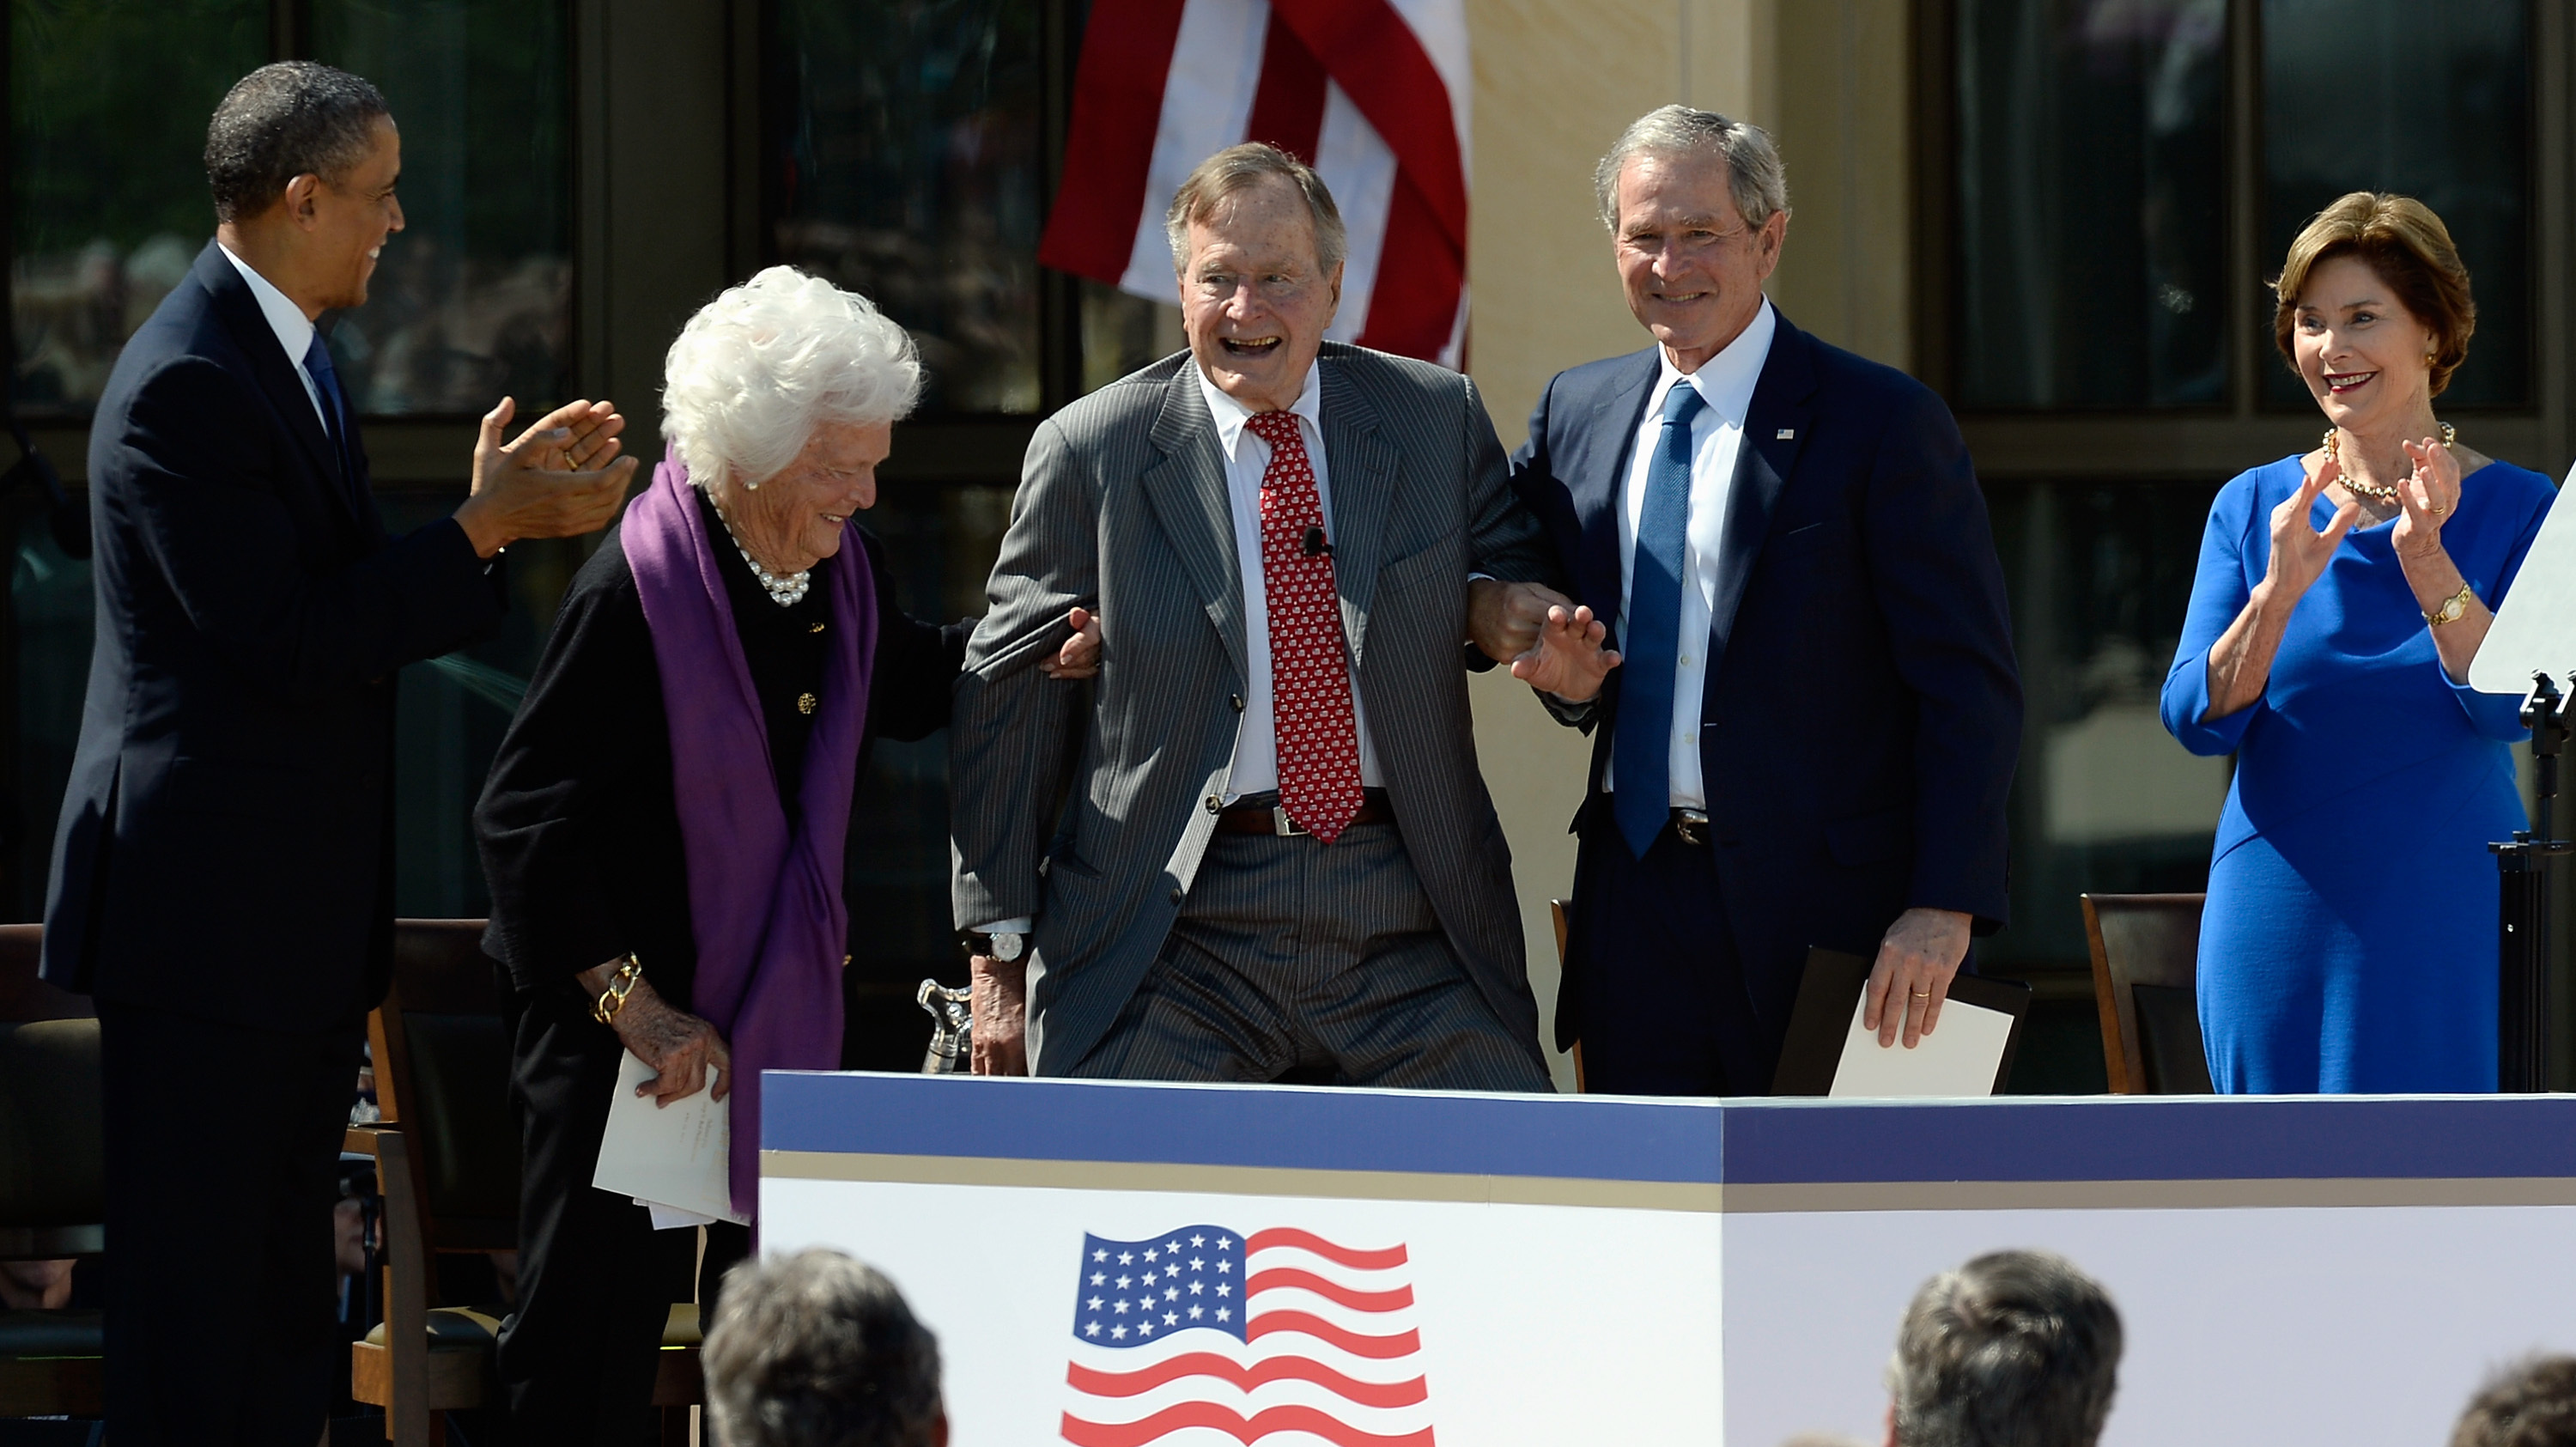 In Second Term, Obama Takes Softer Tone Toward Bushes